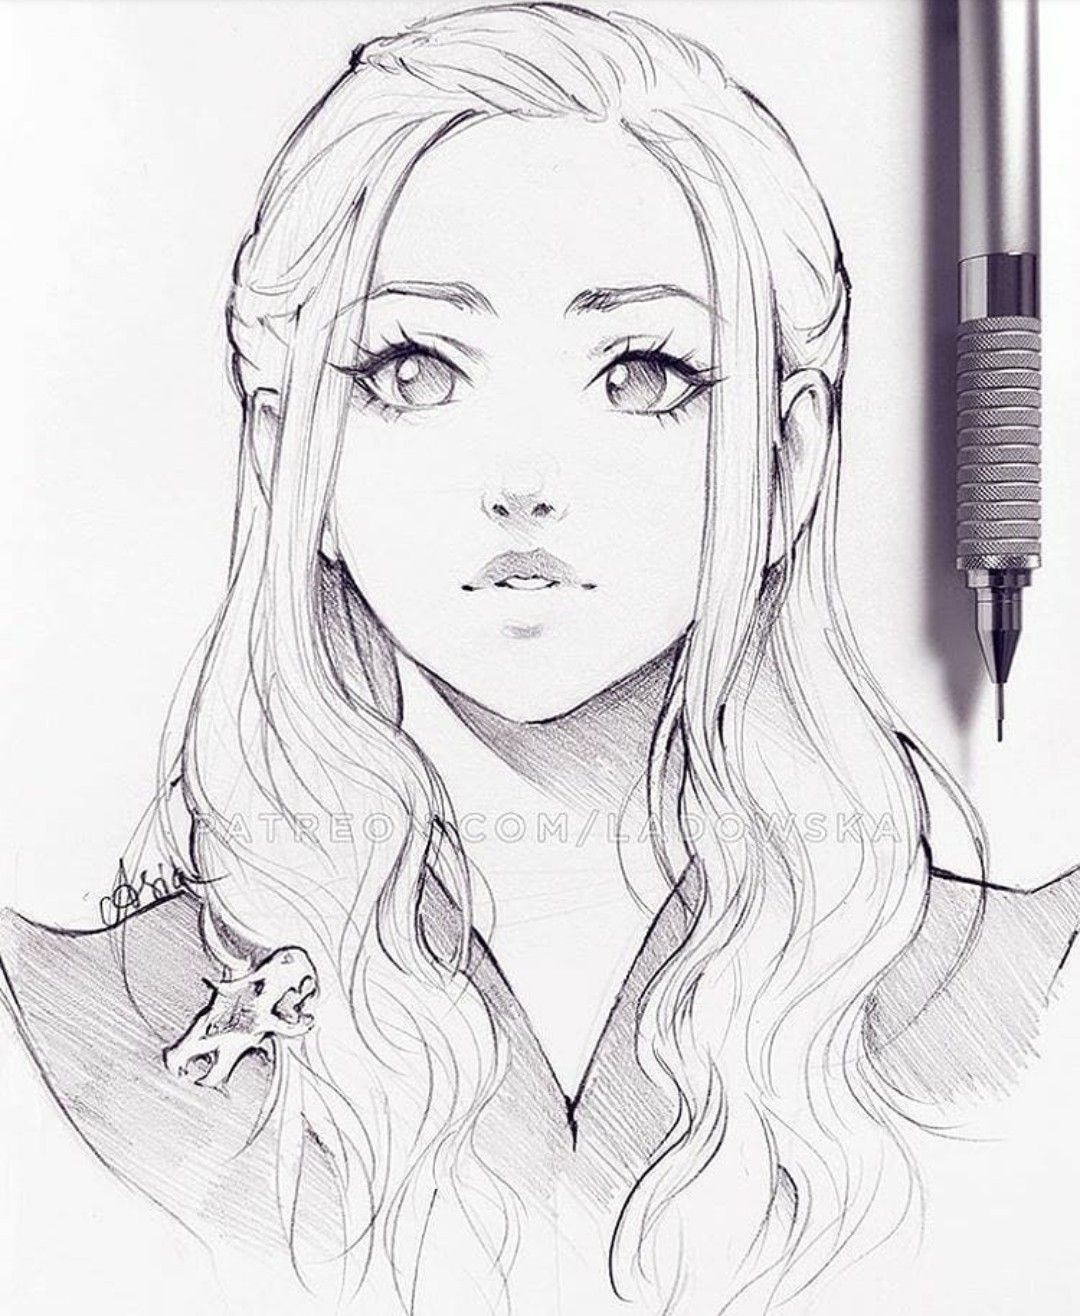 Eyes Nose Mouth Hair Love Every Thing Anime Drawings Sketches Sketches Art Sketches